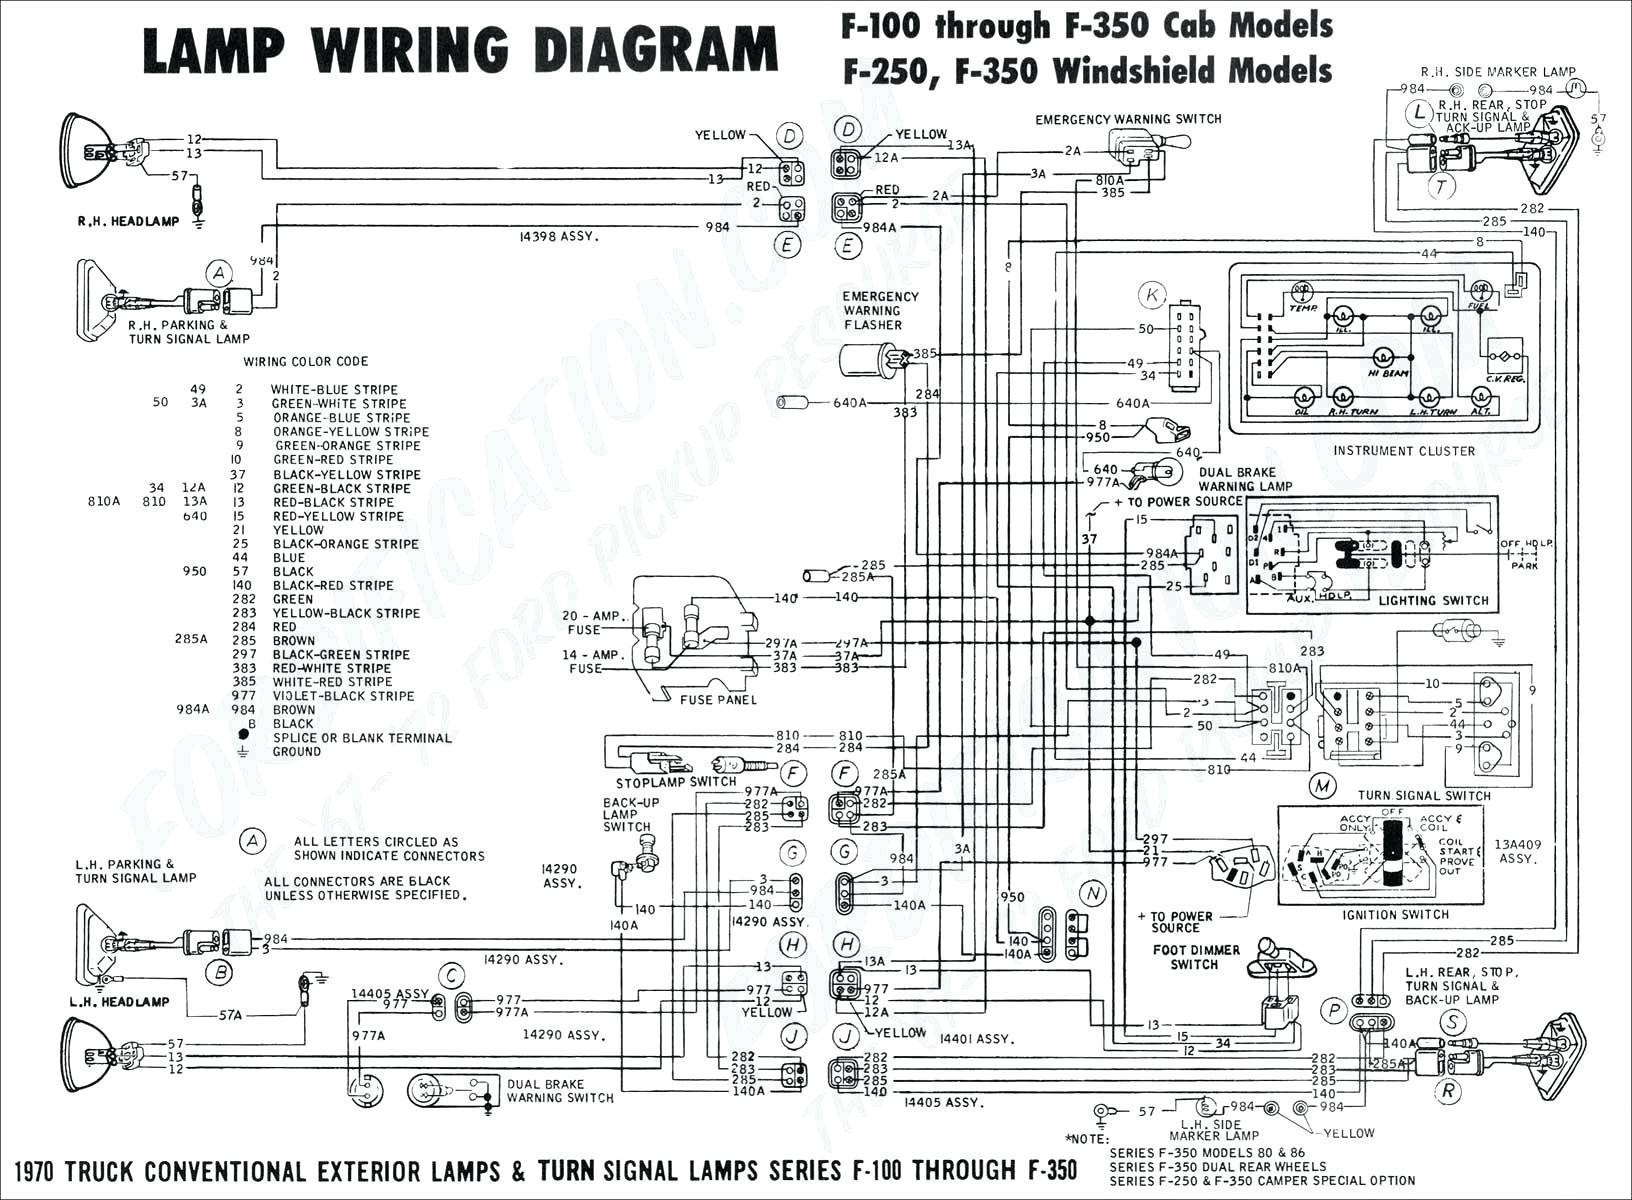 1997 Geo Metro Engine Diagram Tracker Electrical Wiring Diagrams Experts Wiring Diagram • Of 1997 Geo Metro Engine Diagram